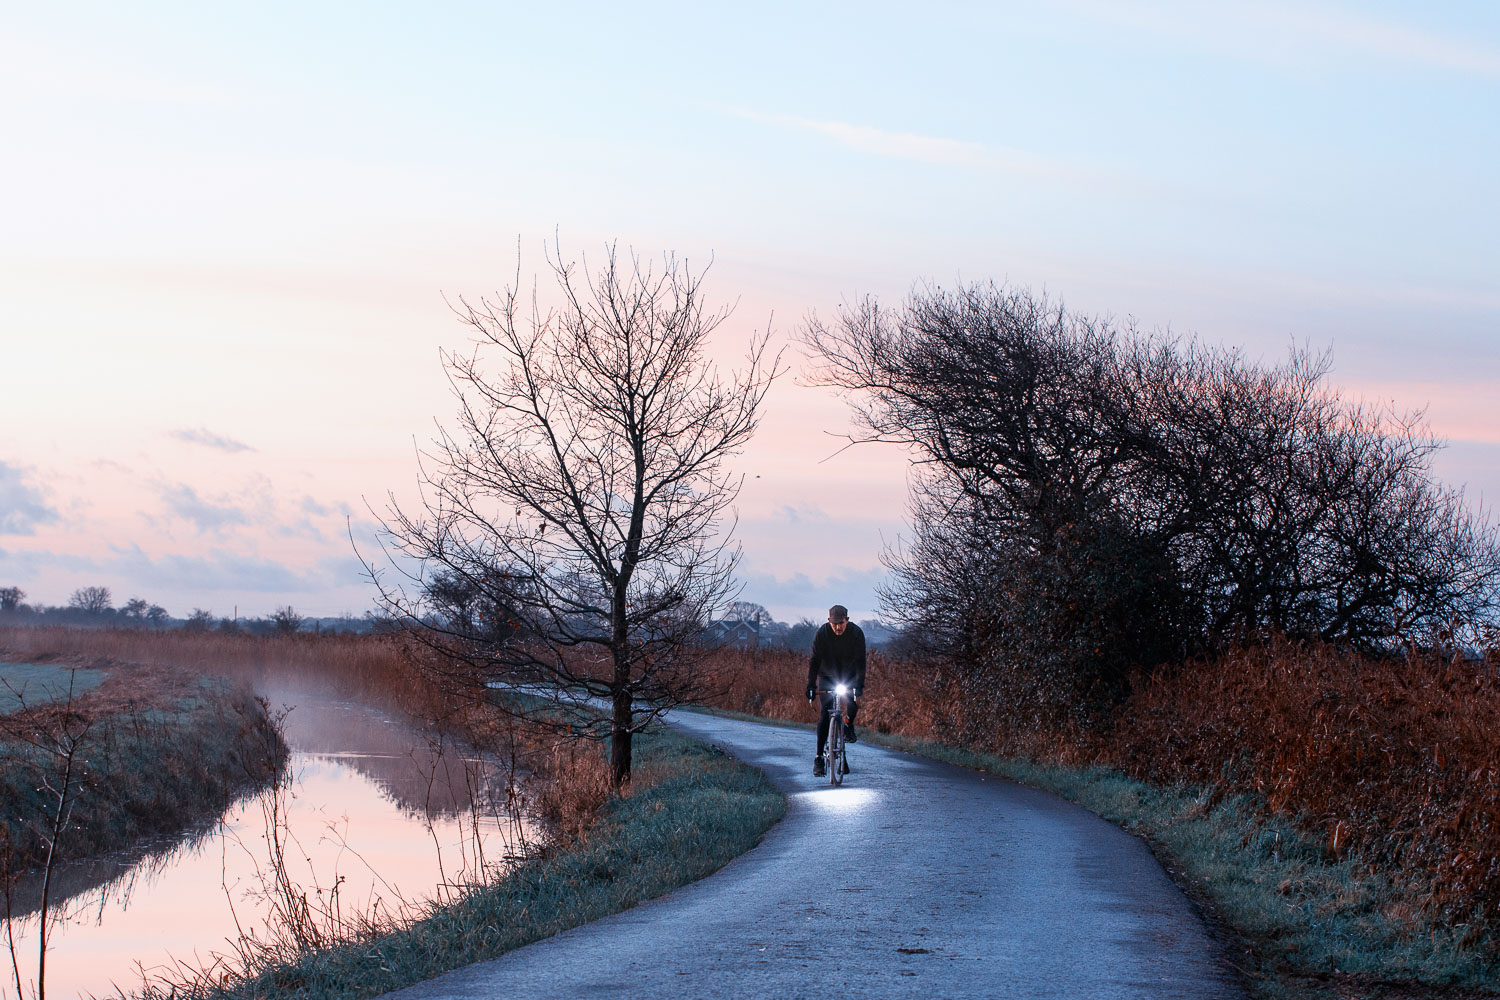 Dawn light - Cycling in Sussex along a country lane in the mashes near Rickney